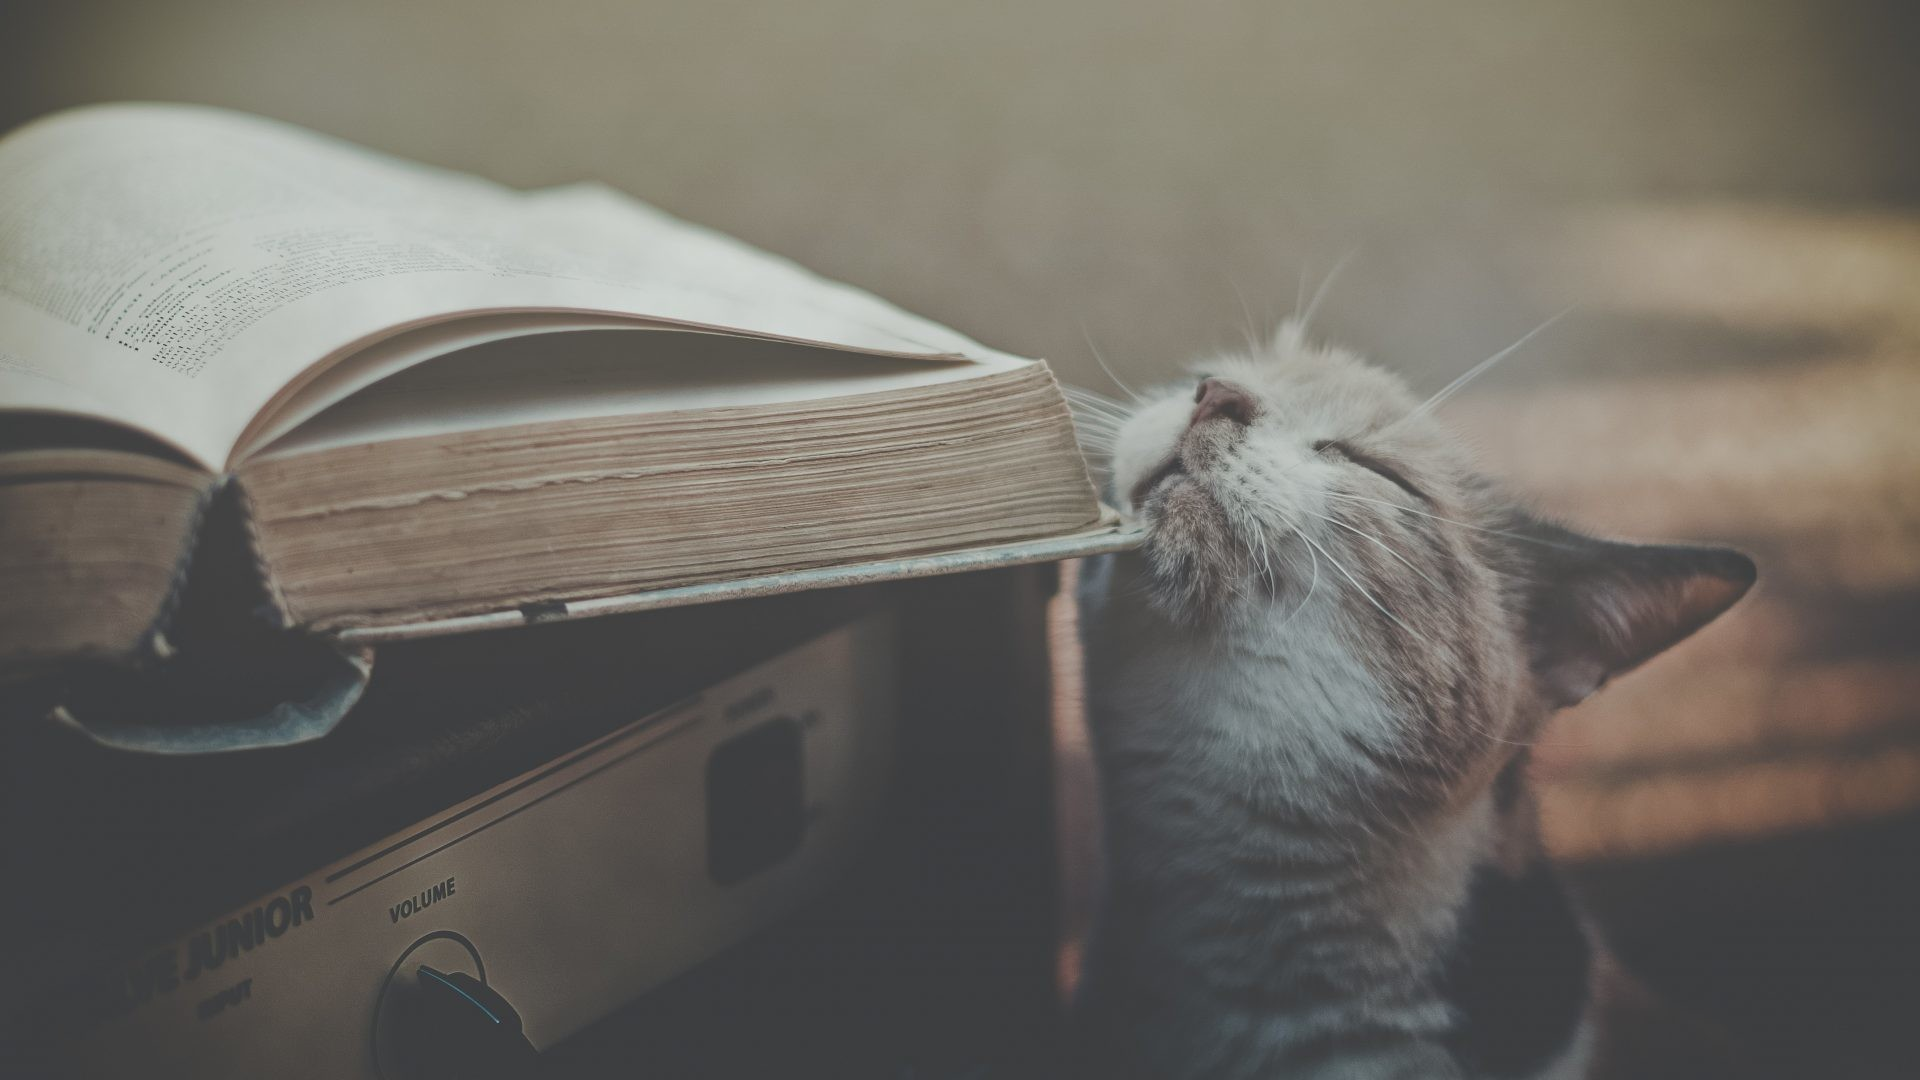 Books Tag – Cats Retro Nature Books Wallpapers Iphone for HD 16:9 High  Definition